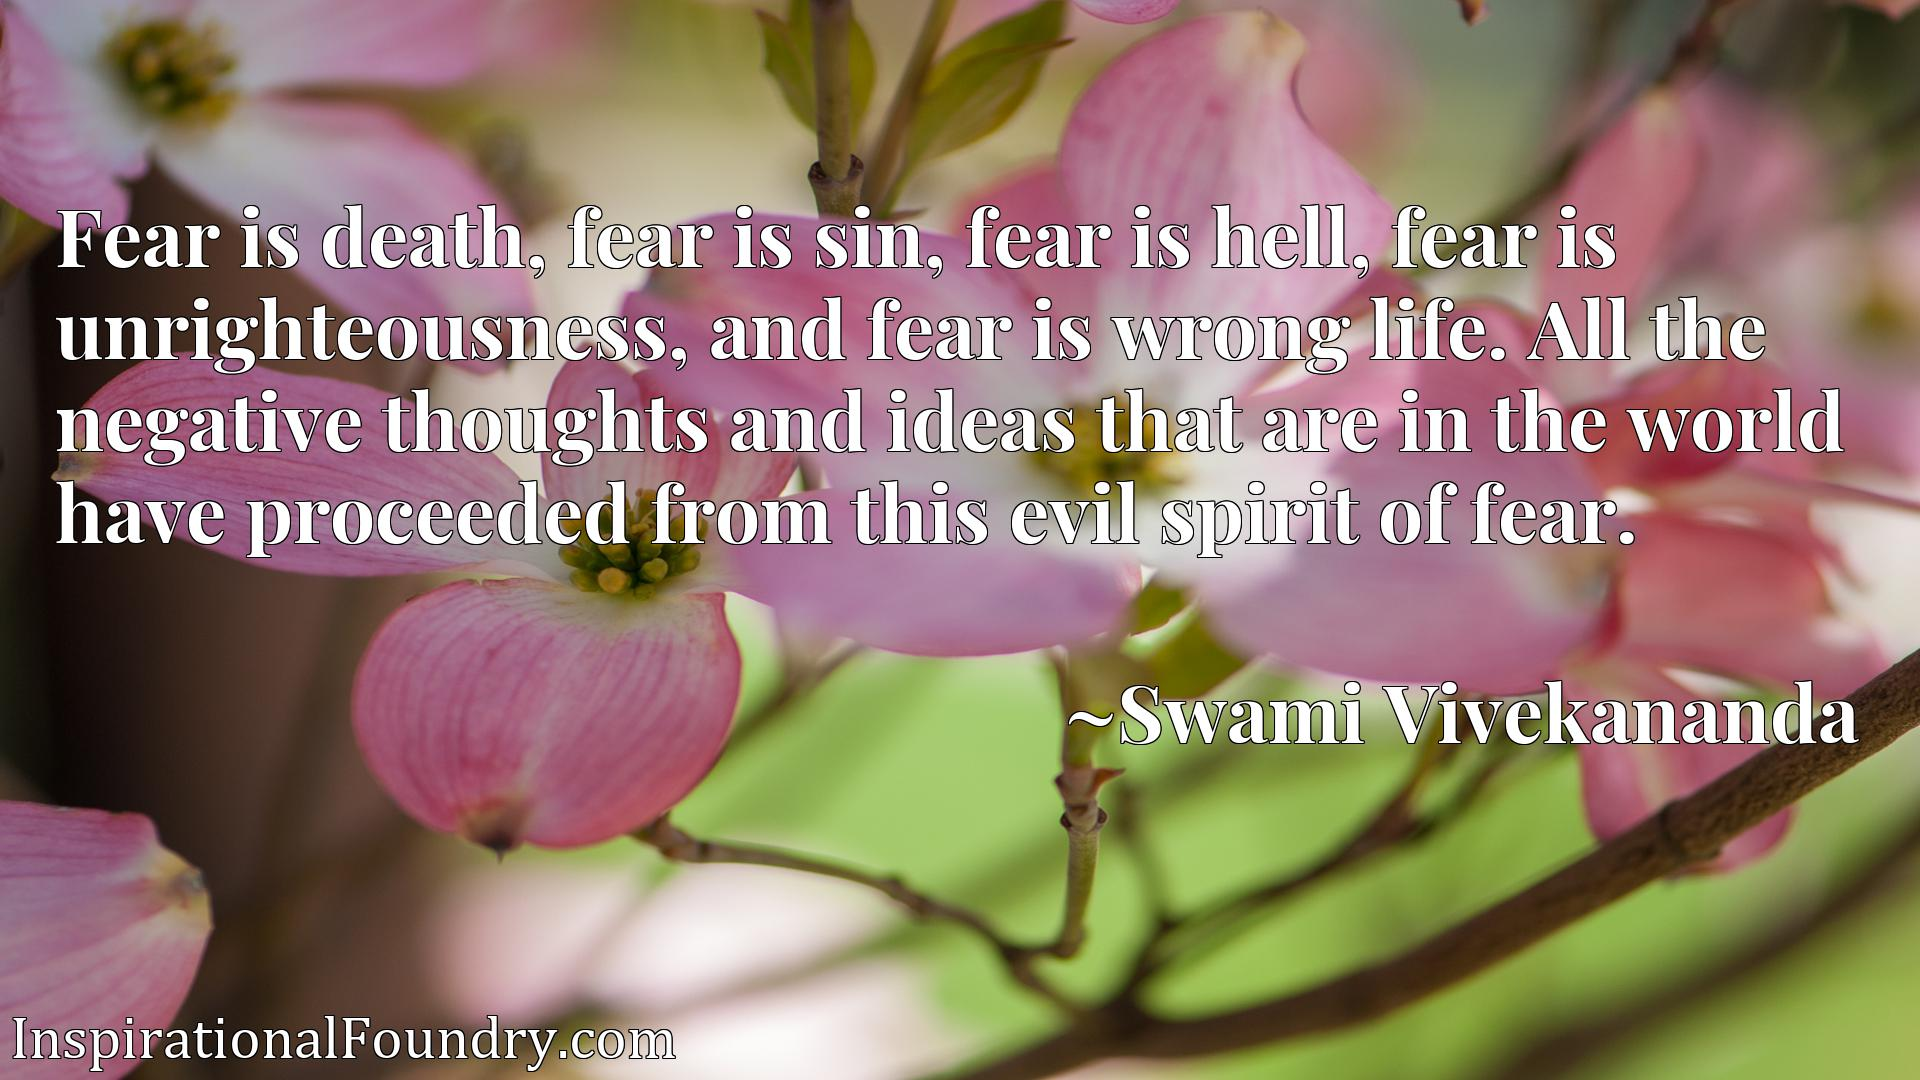 Fear is death, fear is sin, fear is hell, fear is unrighteousness, and fear is wrong life. All the negative thoughts and ideas that are in the world have proceeded from this evil spirit of fear.